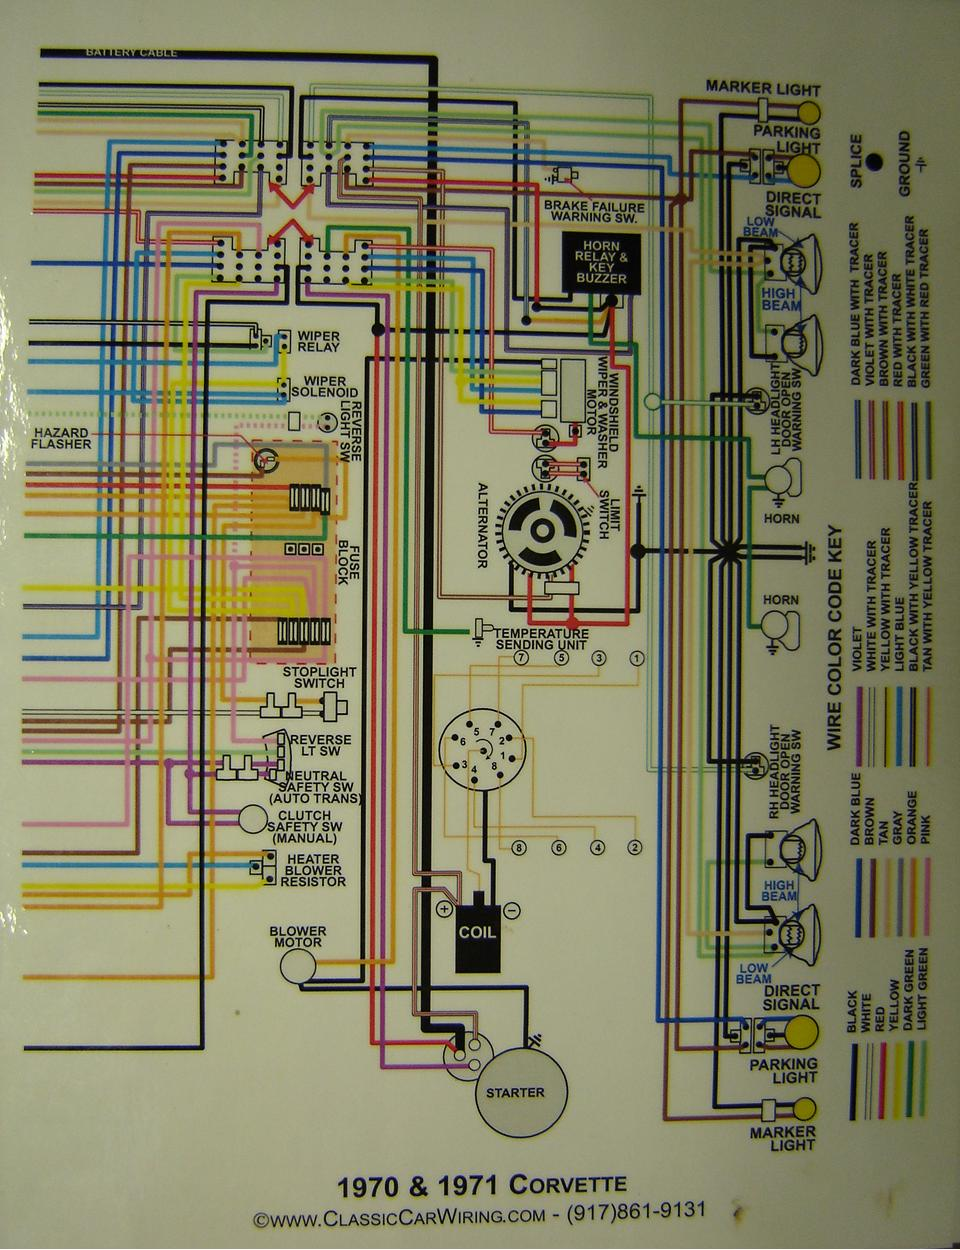 medium resolution of 1970 71 corvette color wiring diagram 2 drawing b